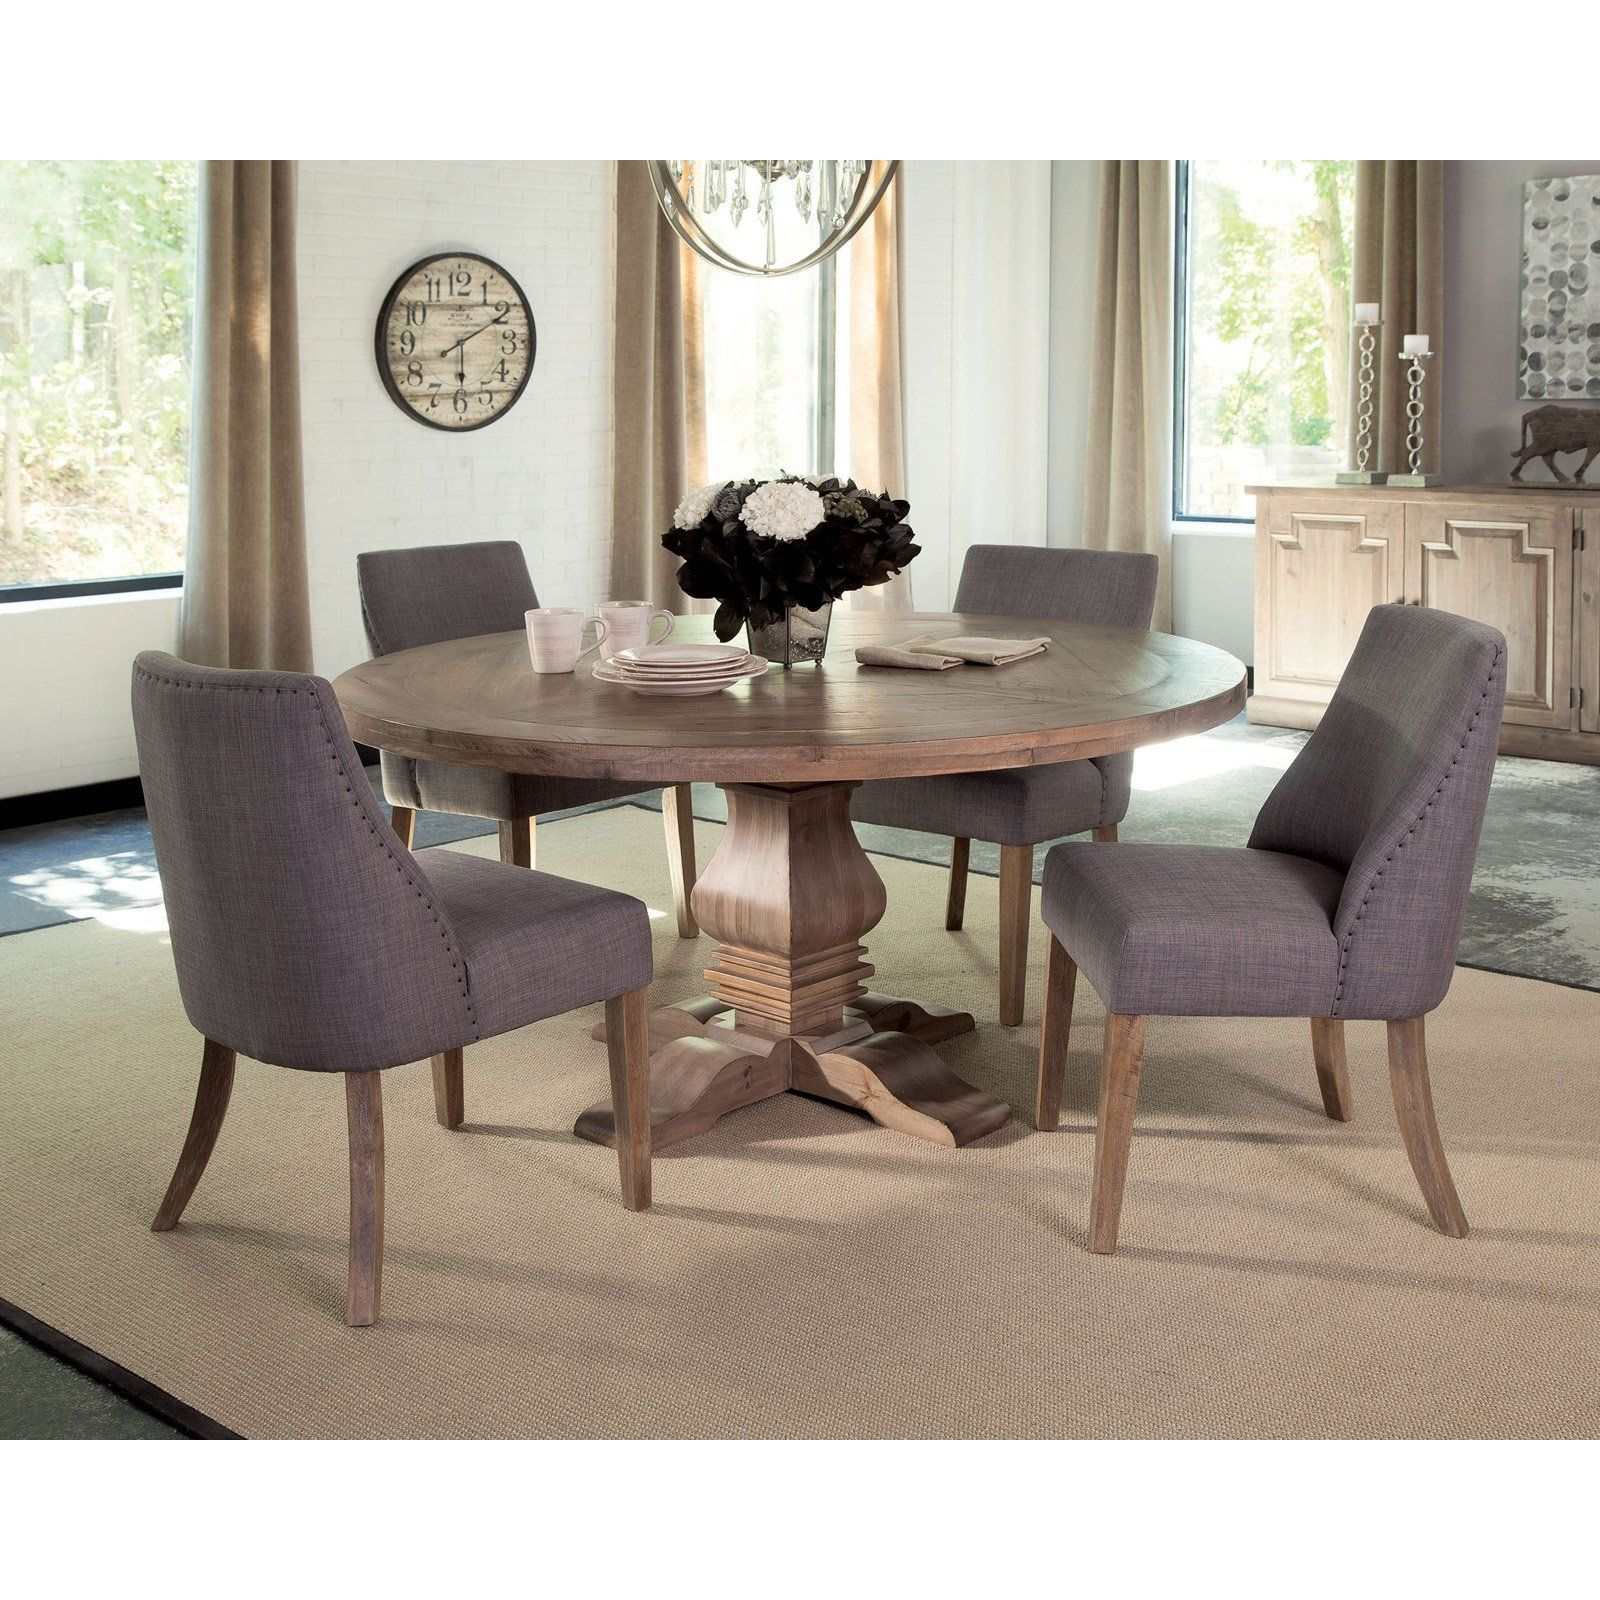 Coaster Furniture Florence 59 75 In Round Dining Table Round